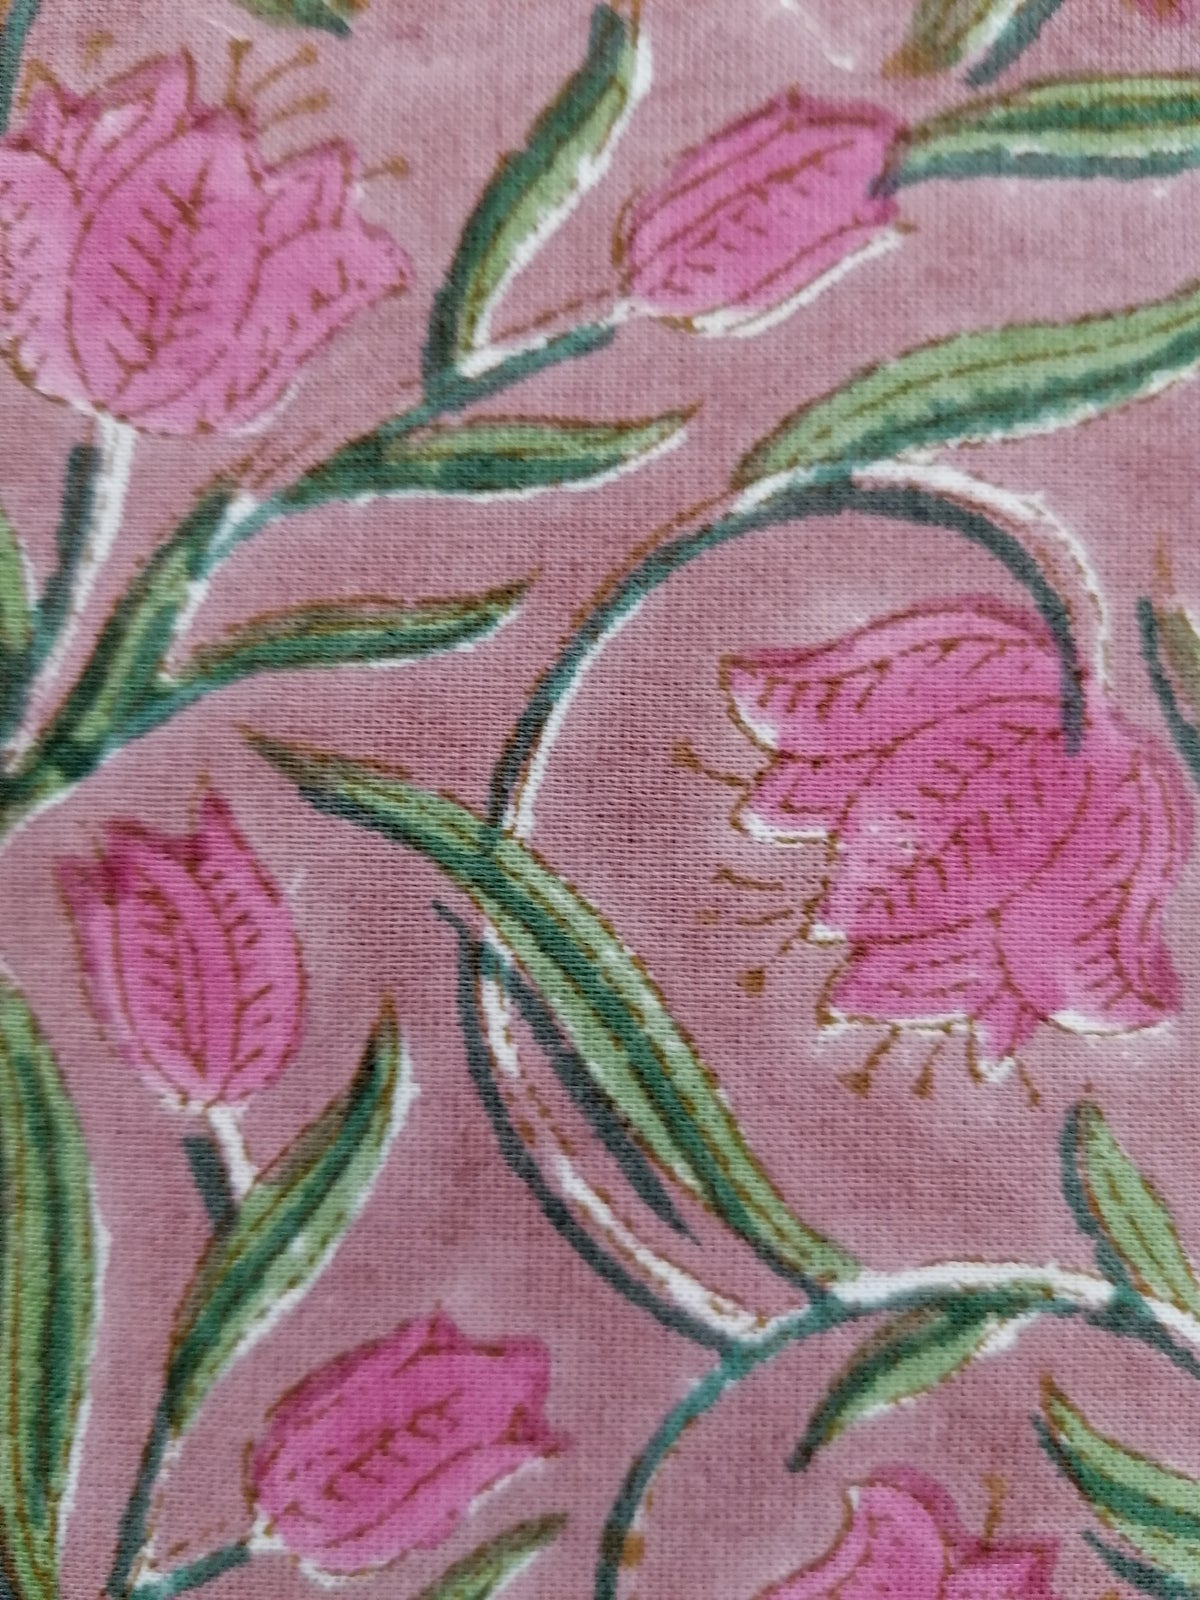 Image of Namasté fabric pink